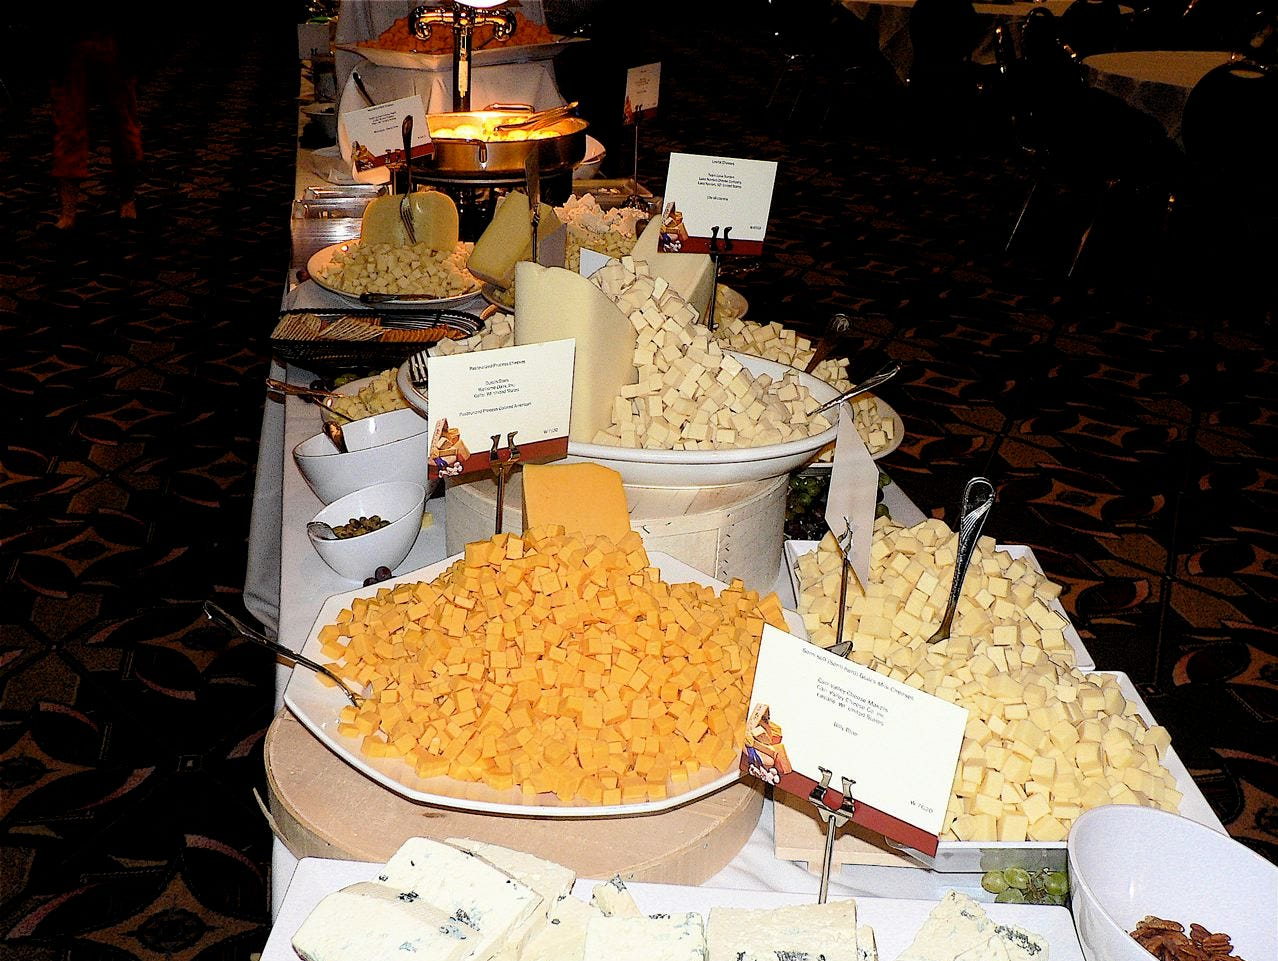 Cheese consumption grows yearly.